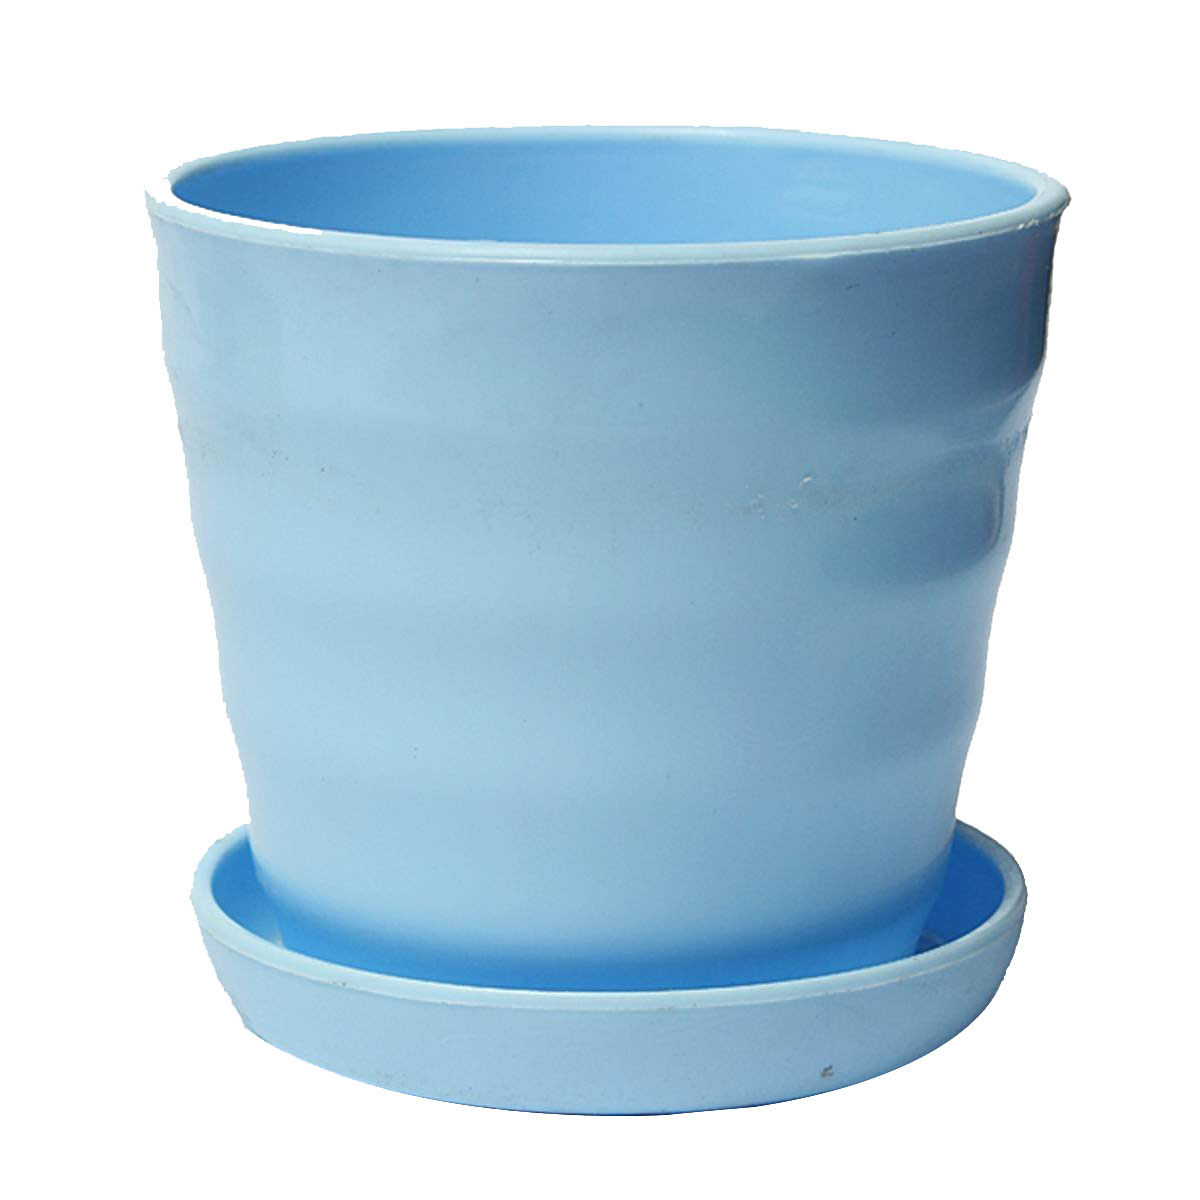 plastic round flower flower pot planter holder with tray home